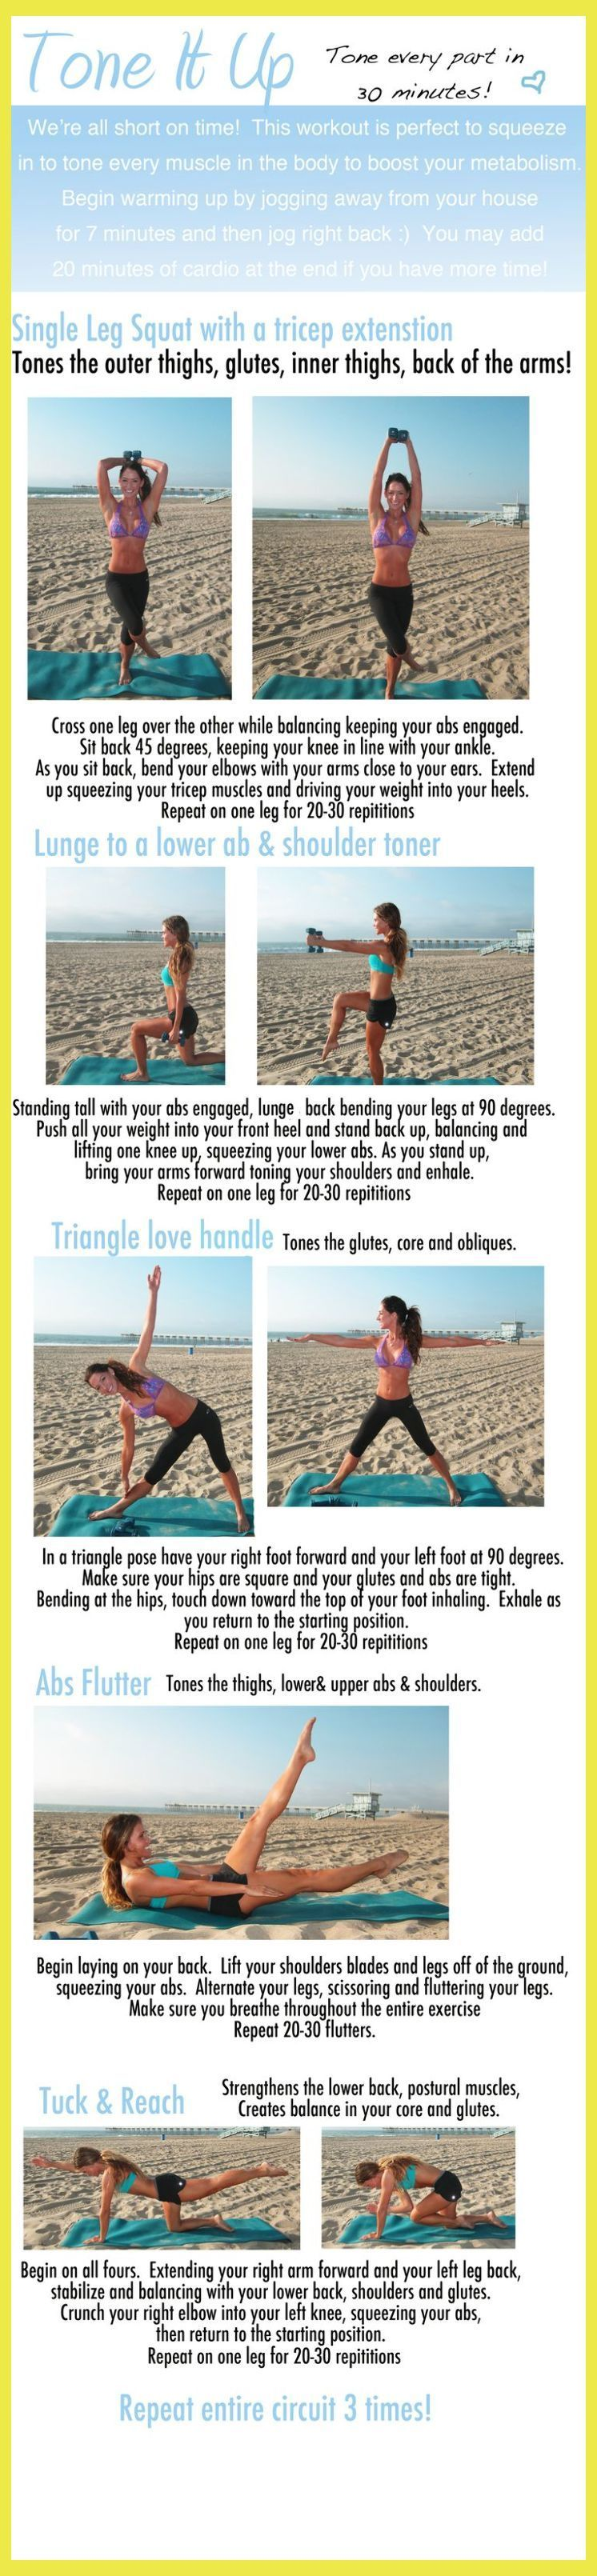 Tone every part in 30 minutes :) | 3 Exercises For Triceps | Quad exercises |  Trap Workout M... #trapsworkout Tone every part in 30 minutes :) | 3 Exercises For Triceps | Quad exercises |  Trap Workout Men Exercises . #trapeziusmuscle #Total Body Toning Workouts! #trapsworkout